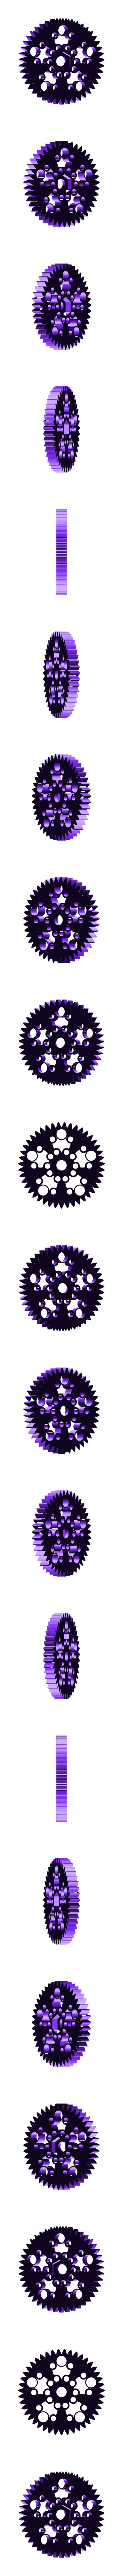 big_gear.stl Download free STL file Geared Extruder using M8 extruder driver • 3D printable template, Job